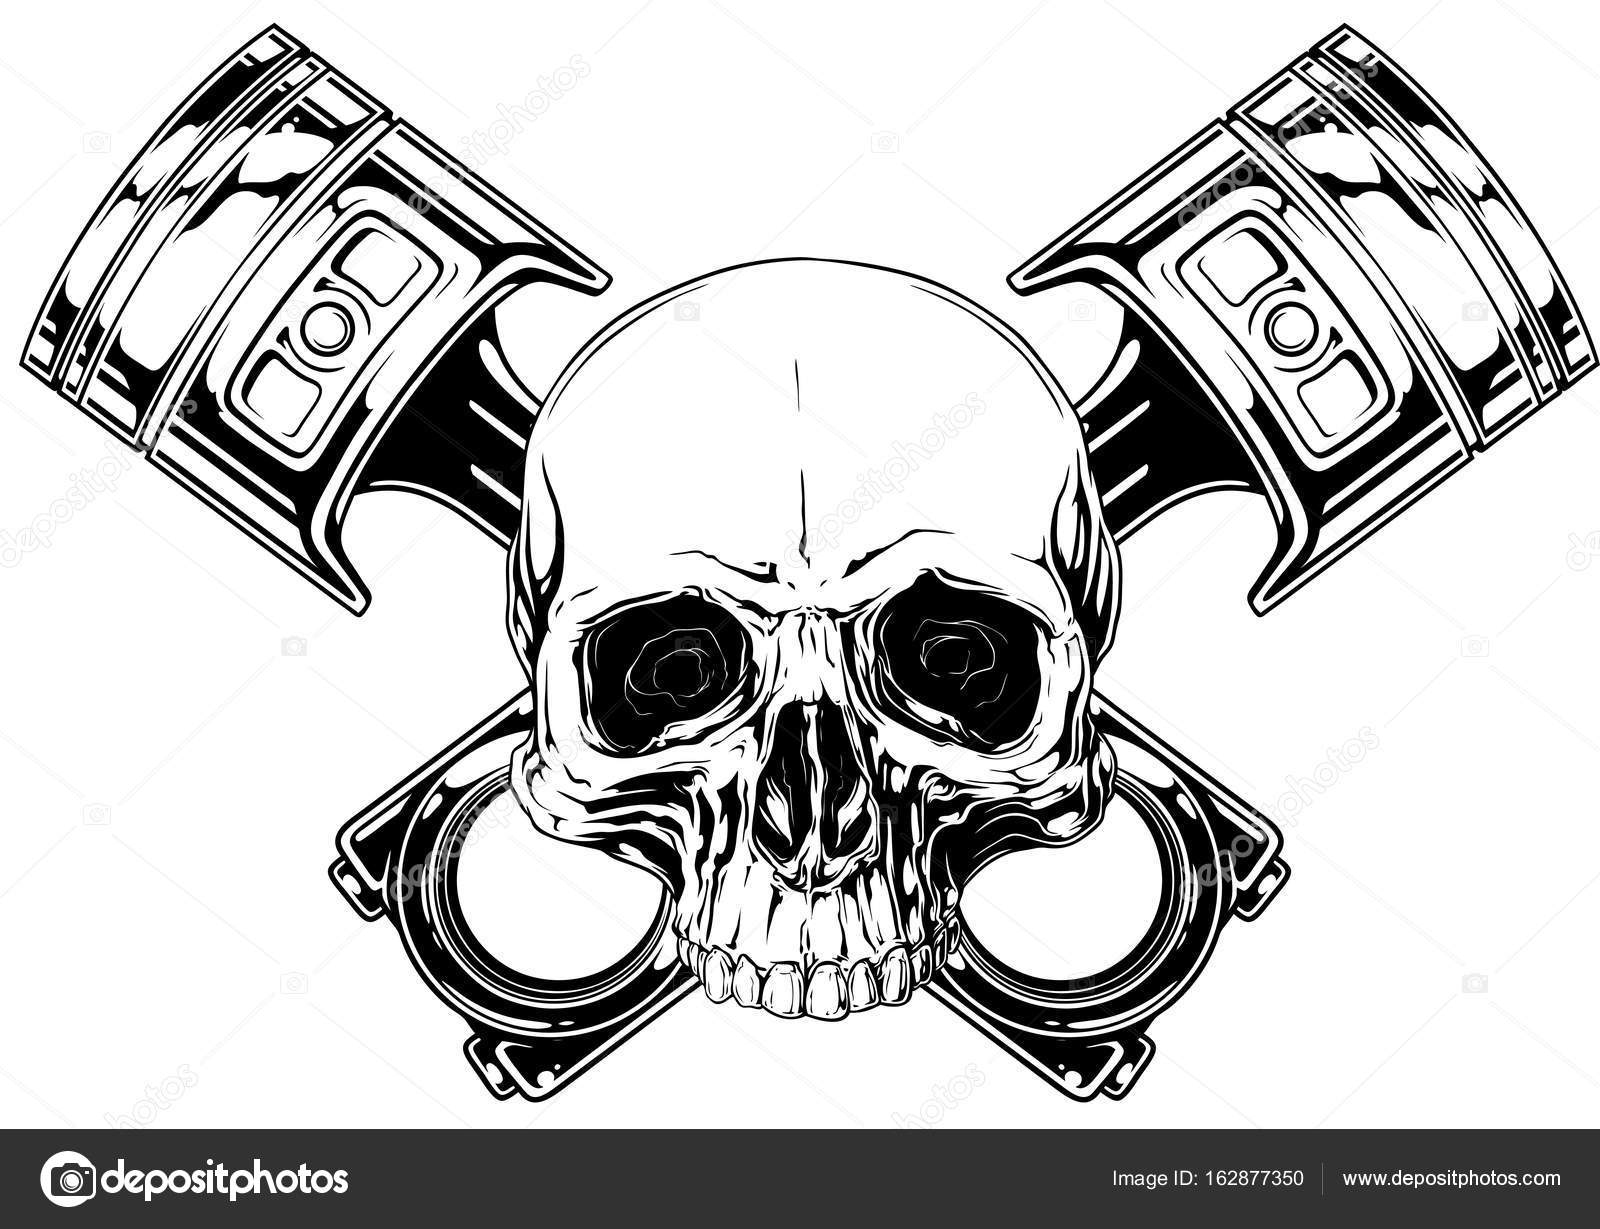 1600x1229 Graphic Human Skull With Crossed Car Piston Vector Stock Vector